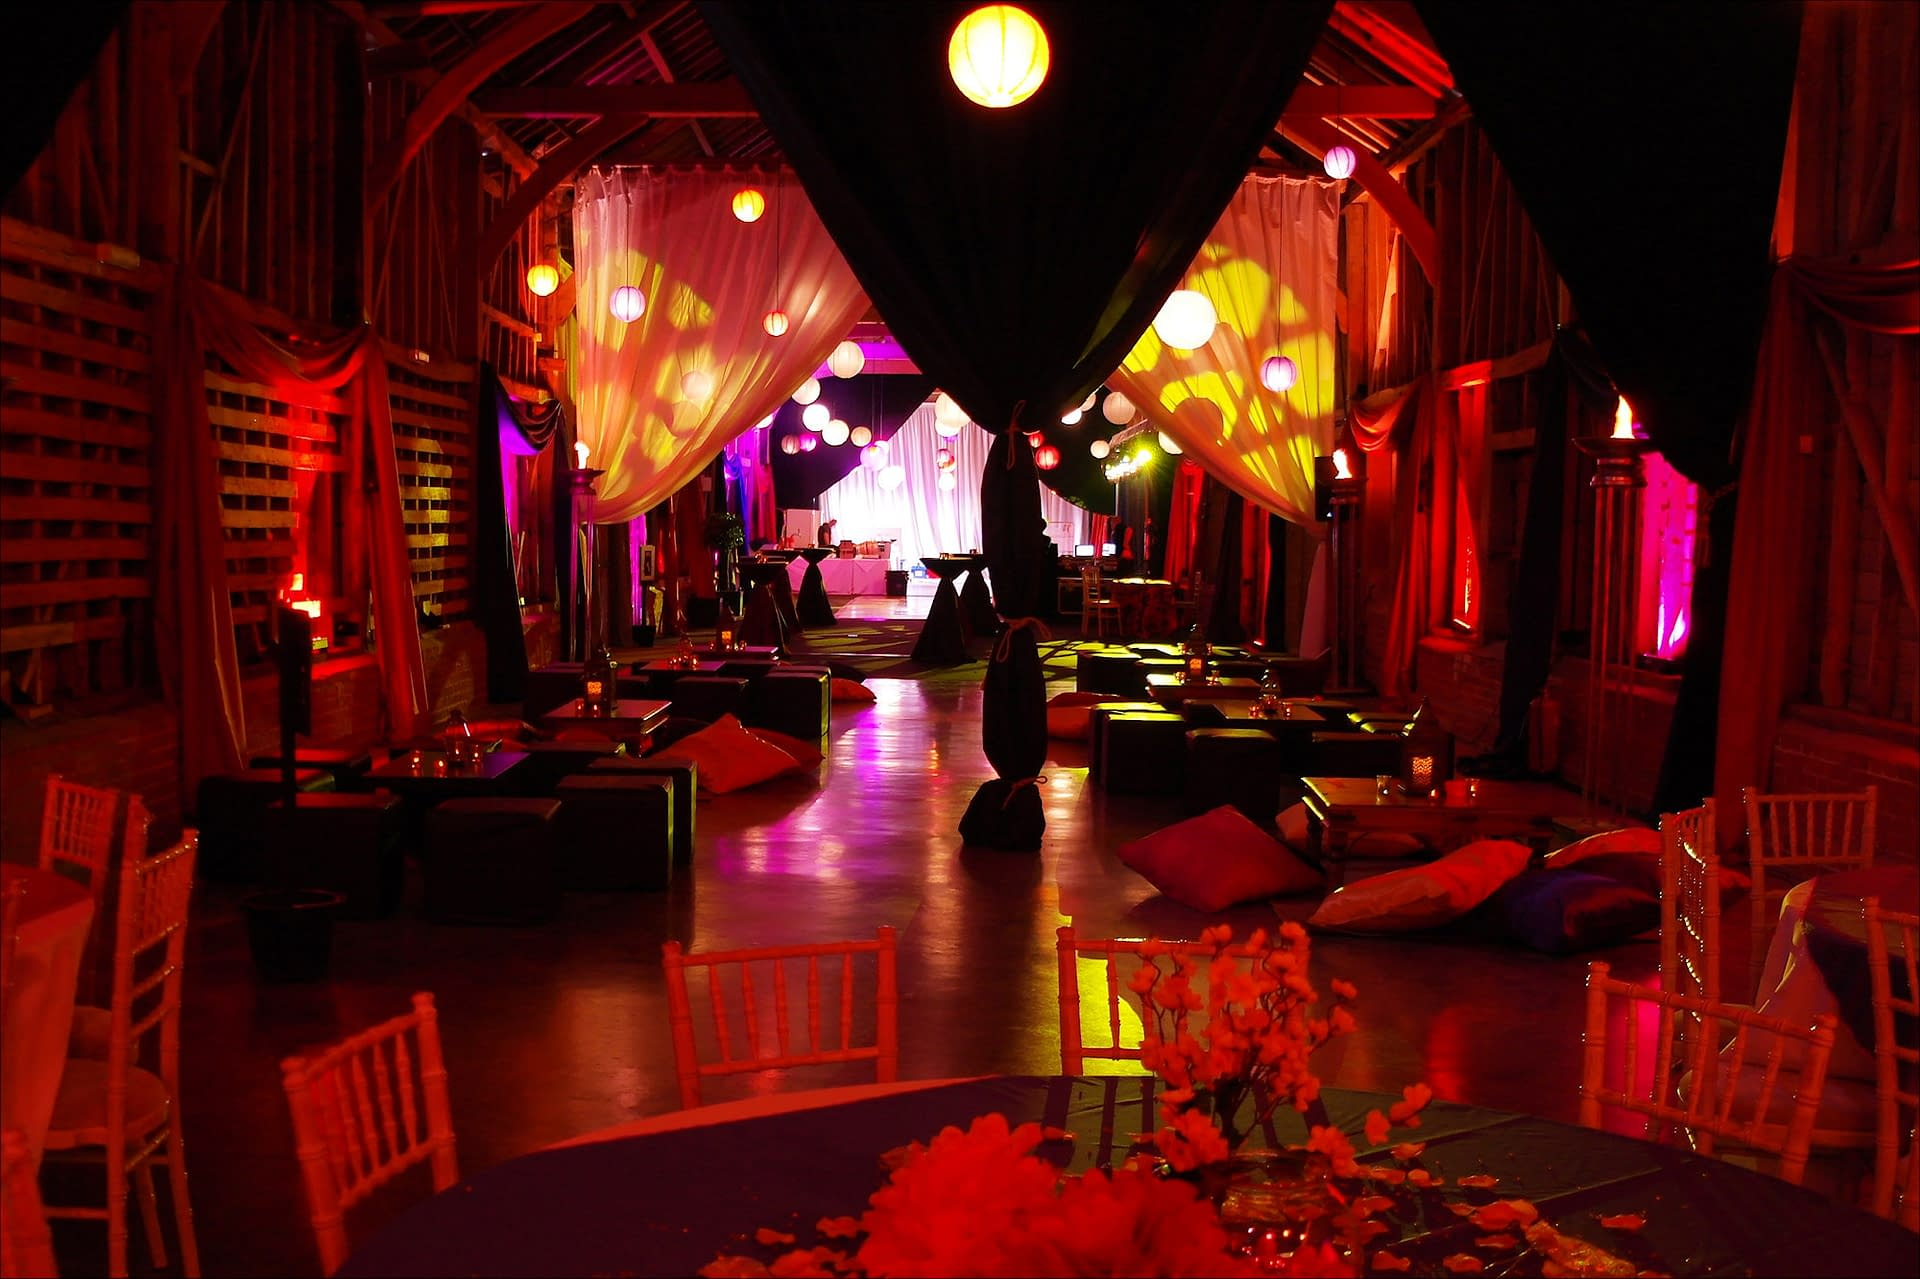 Moroccan mood lighting, lanterns and chill-out furniture at Childerley Barns UK party venue supplied by event planning company Stressfree venue transformers